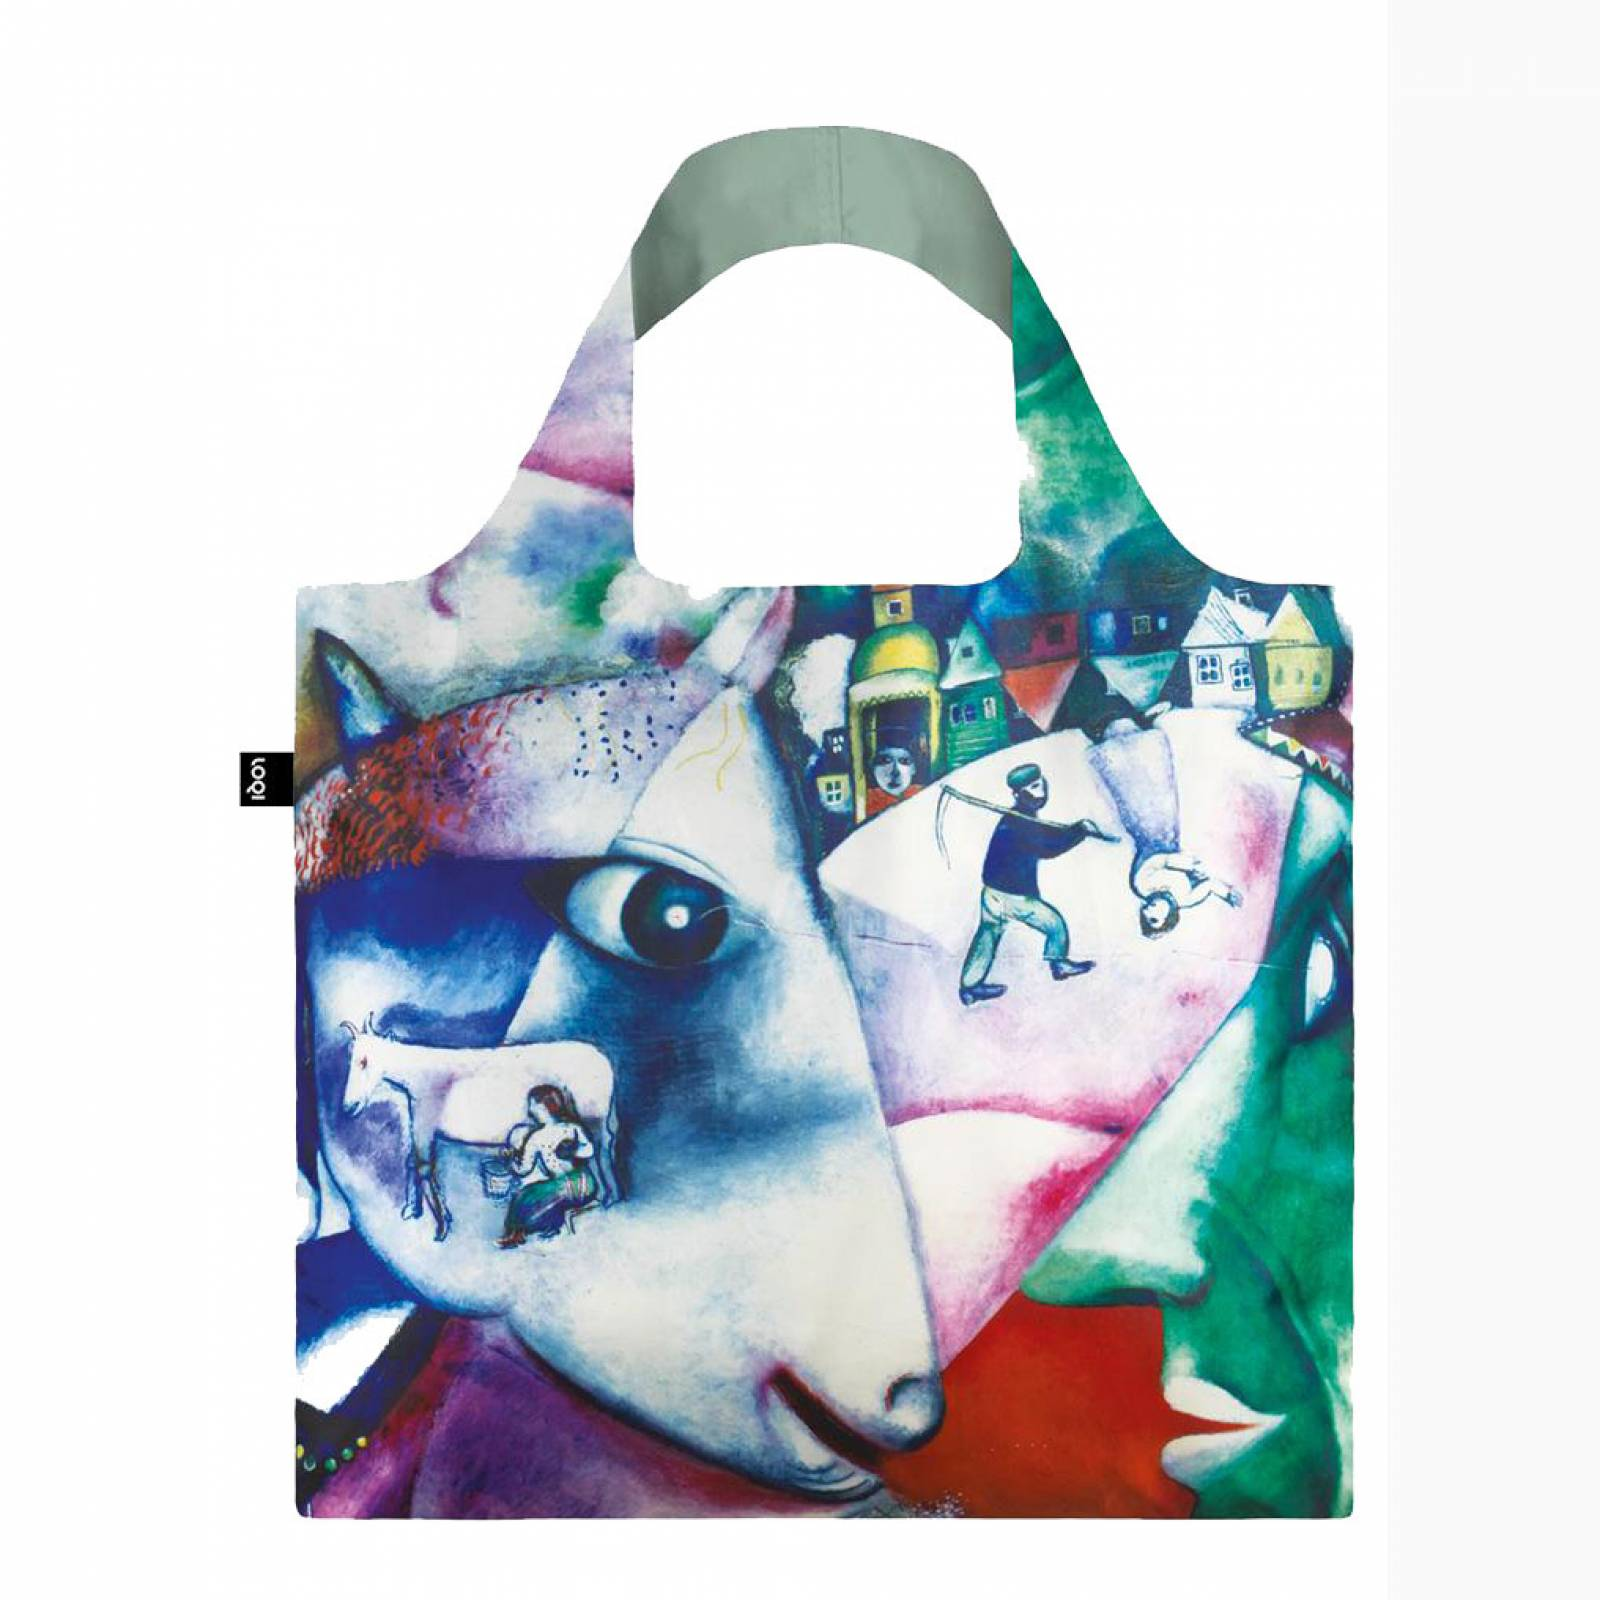 Chagall - Reusable Tote Bag With Pouch